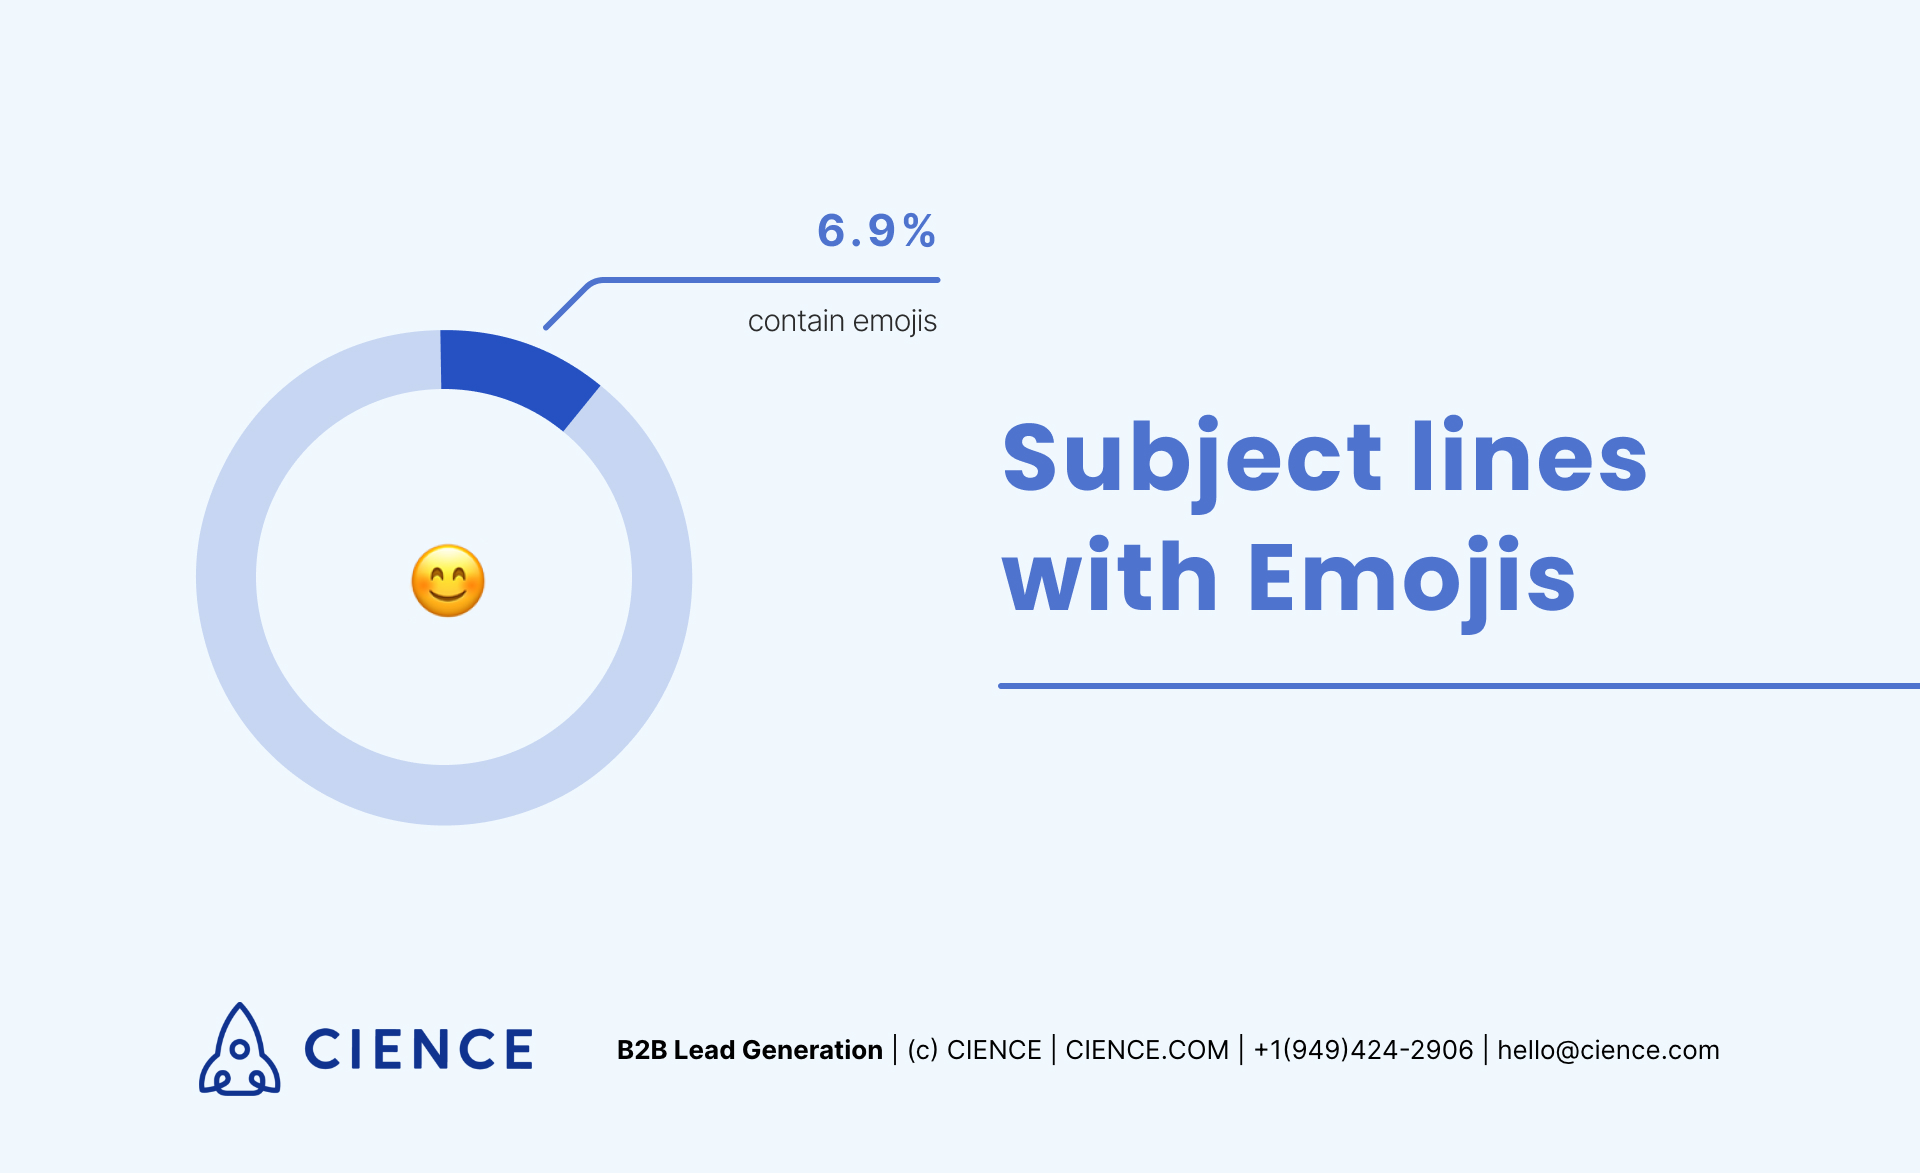 Using emojis in email subject lines